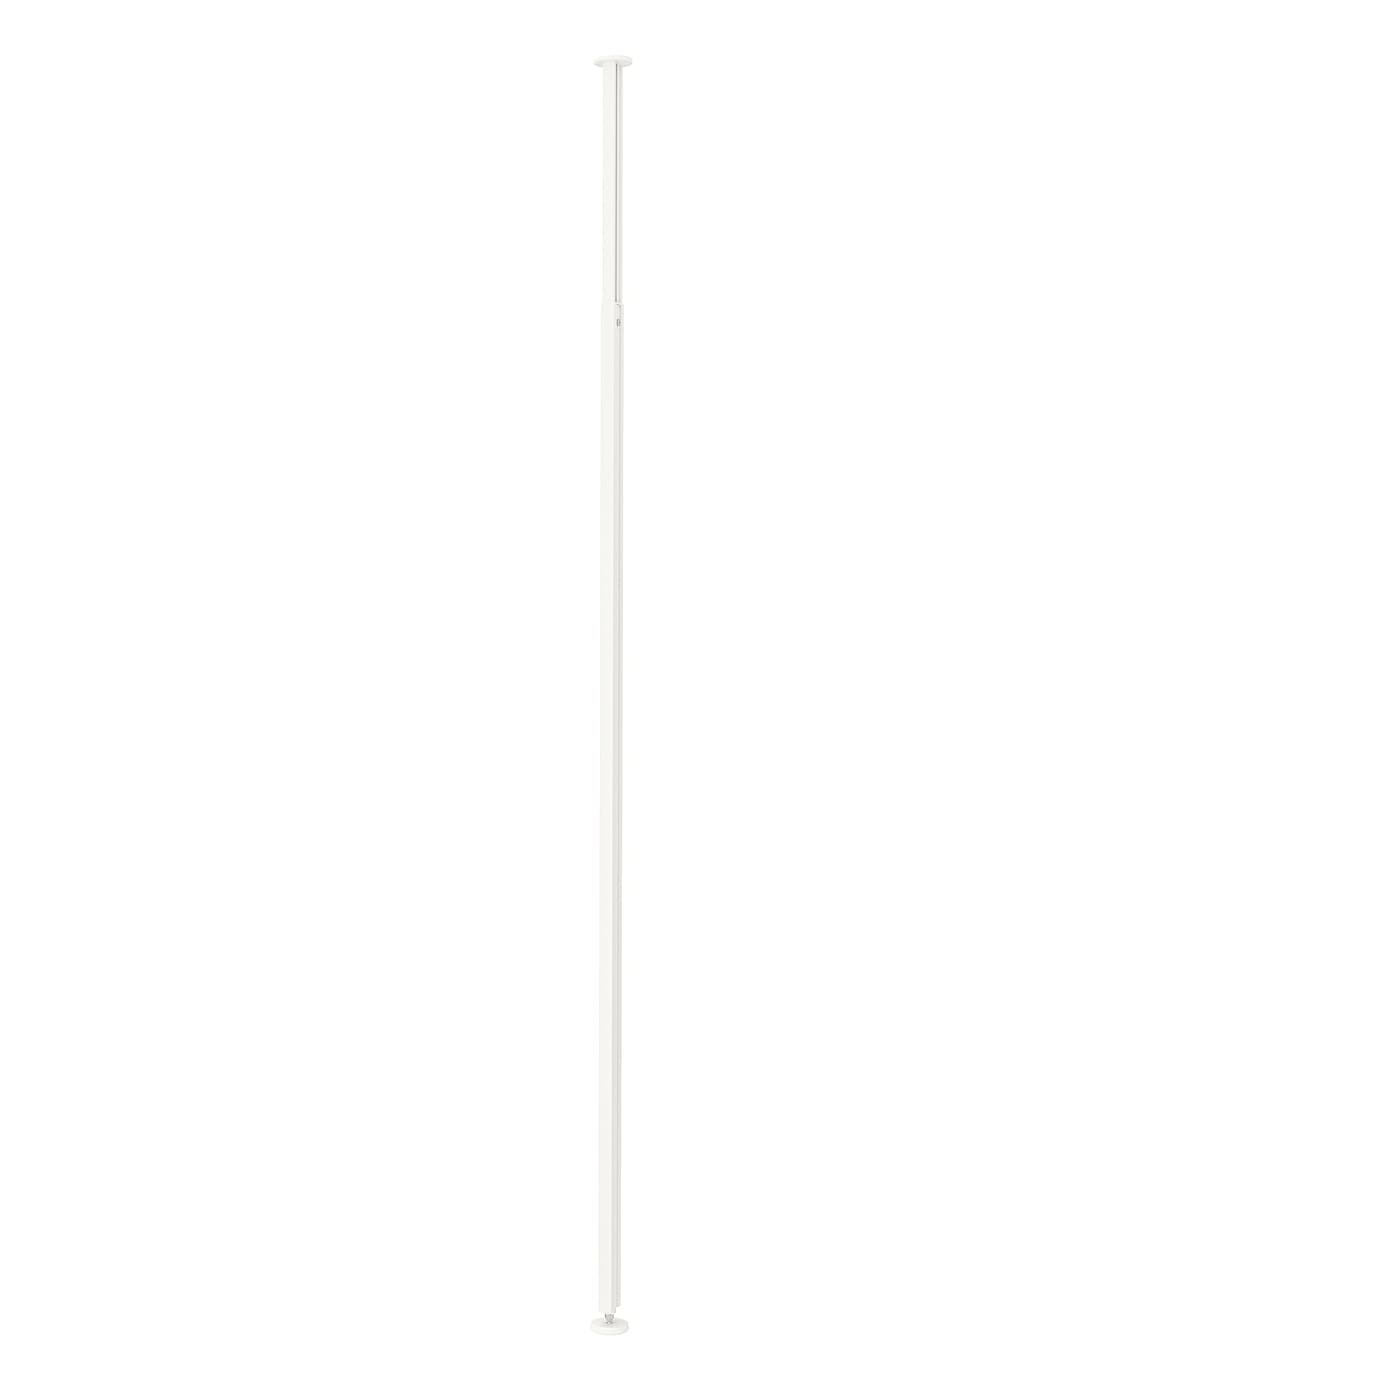 IKEA ELVARLI post Height adjustable 222-350 cm - allows you to utilise the entire ceiling height.